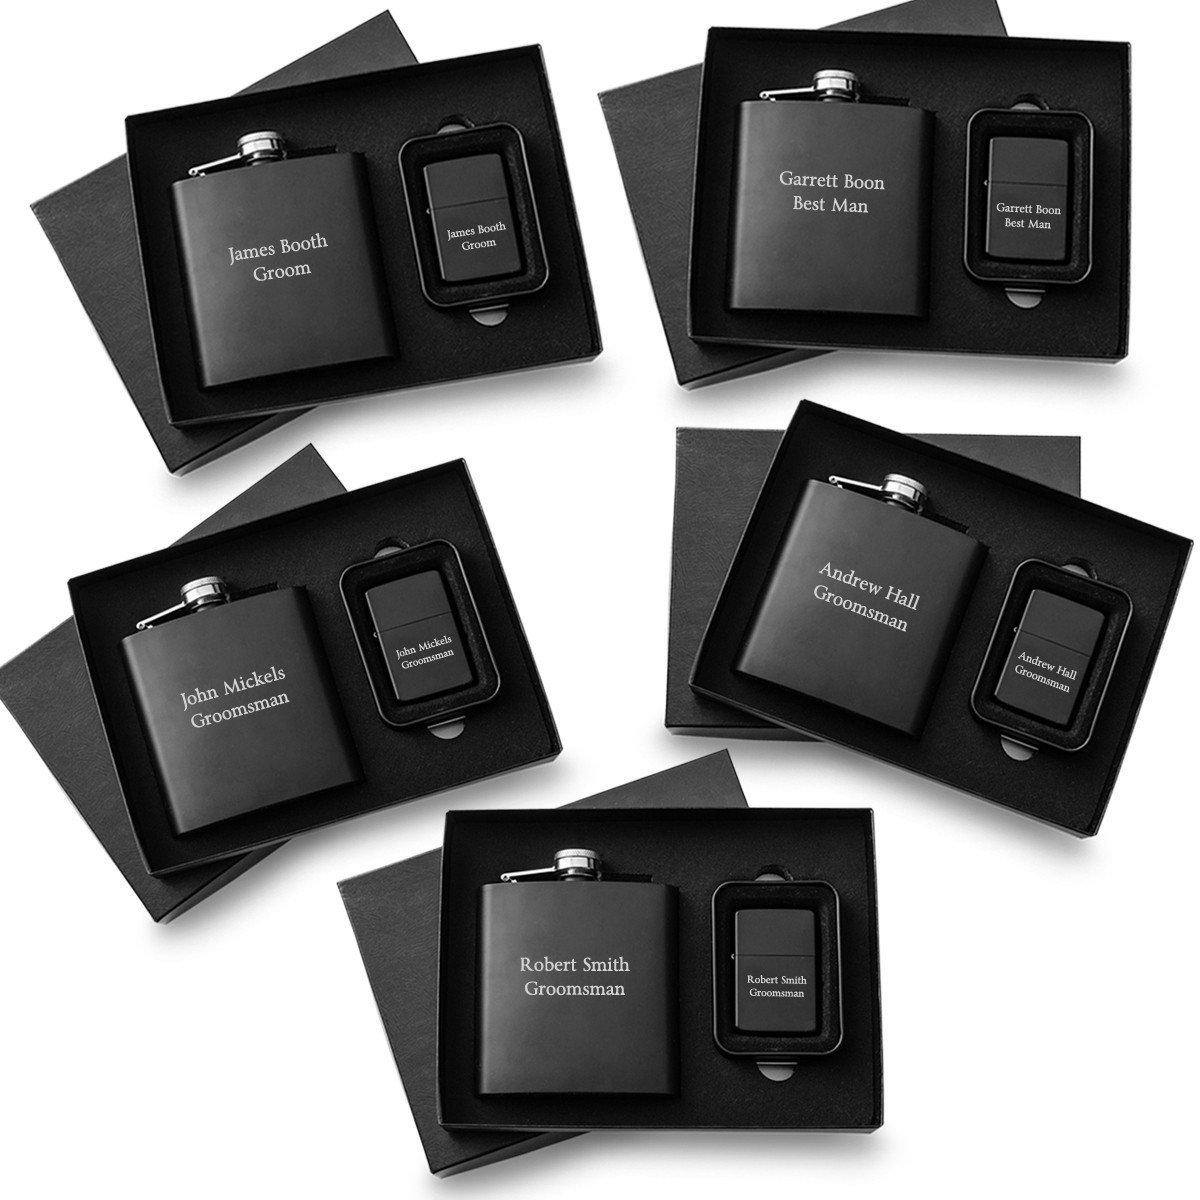 Personalized Matte Black Flask and Lighter Gift Box - Set of 5 Lighter and Flask Sets